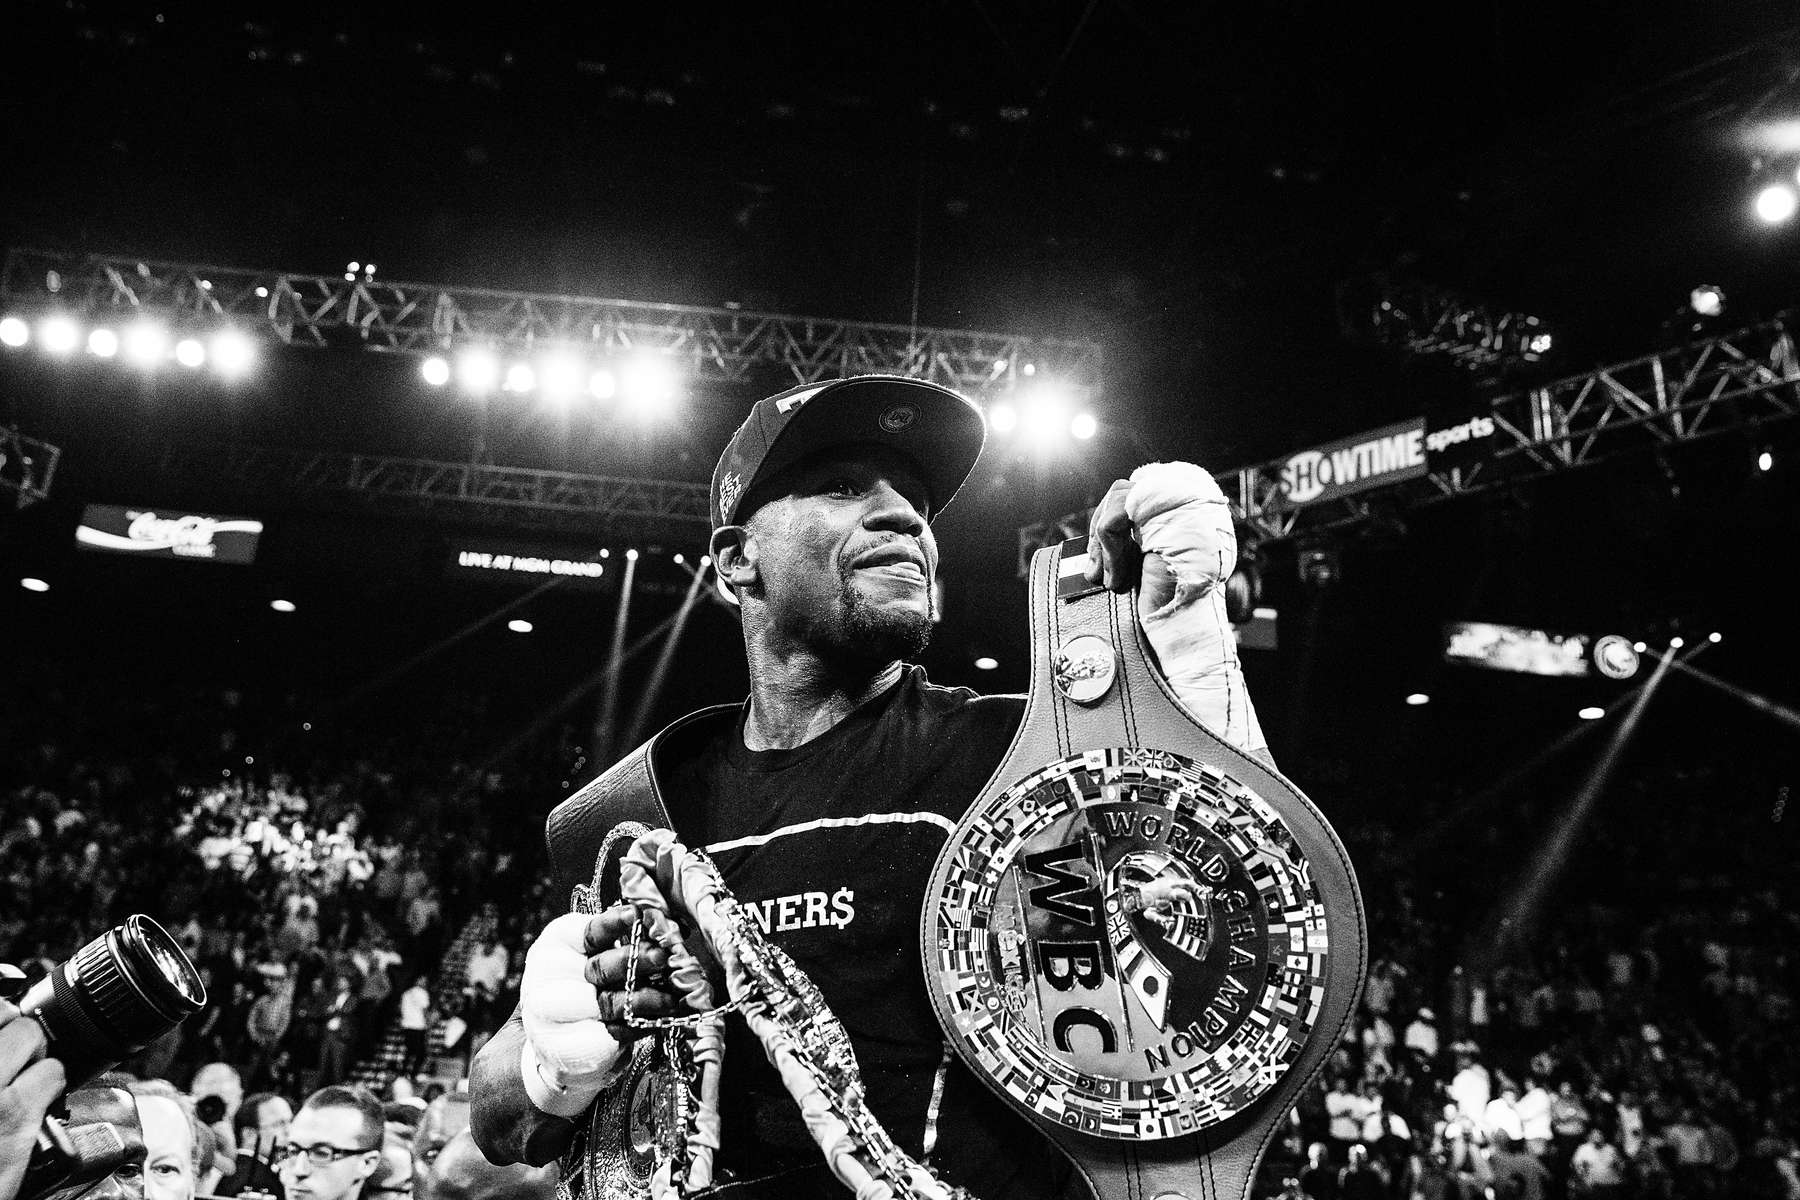 LAS VEGAS, NV - SEPTEMBER 14: Mayweather, his record now 45 wins, and no loses, holds his championship belts aloft following his win over Alvares. (Photo by Benjamin Lowy/Reportage by Getty Images)